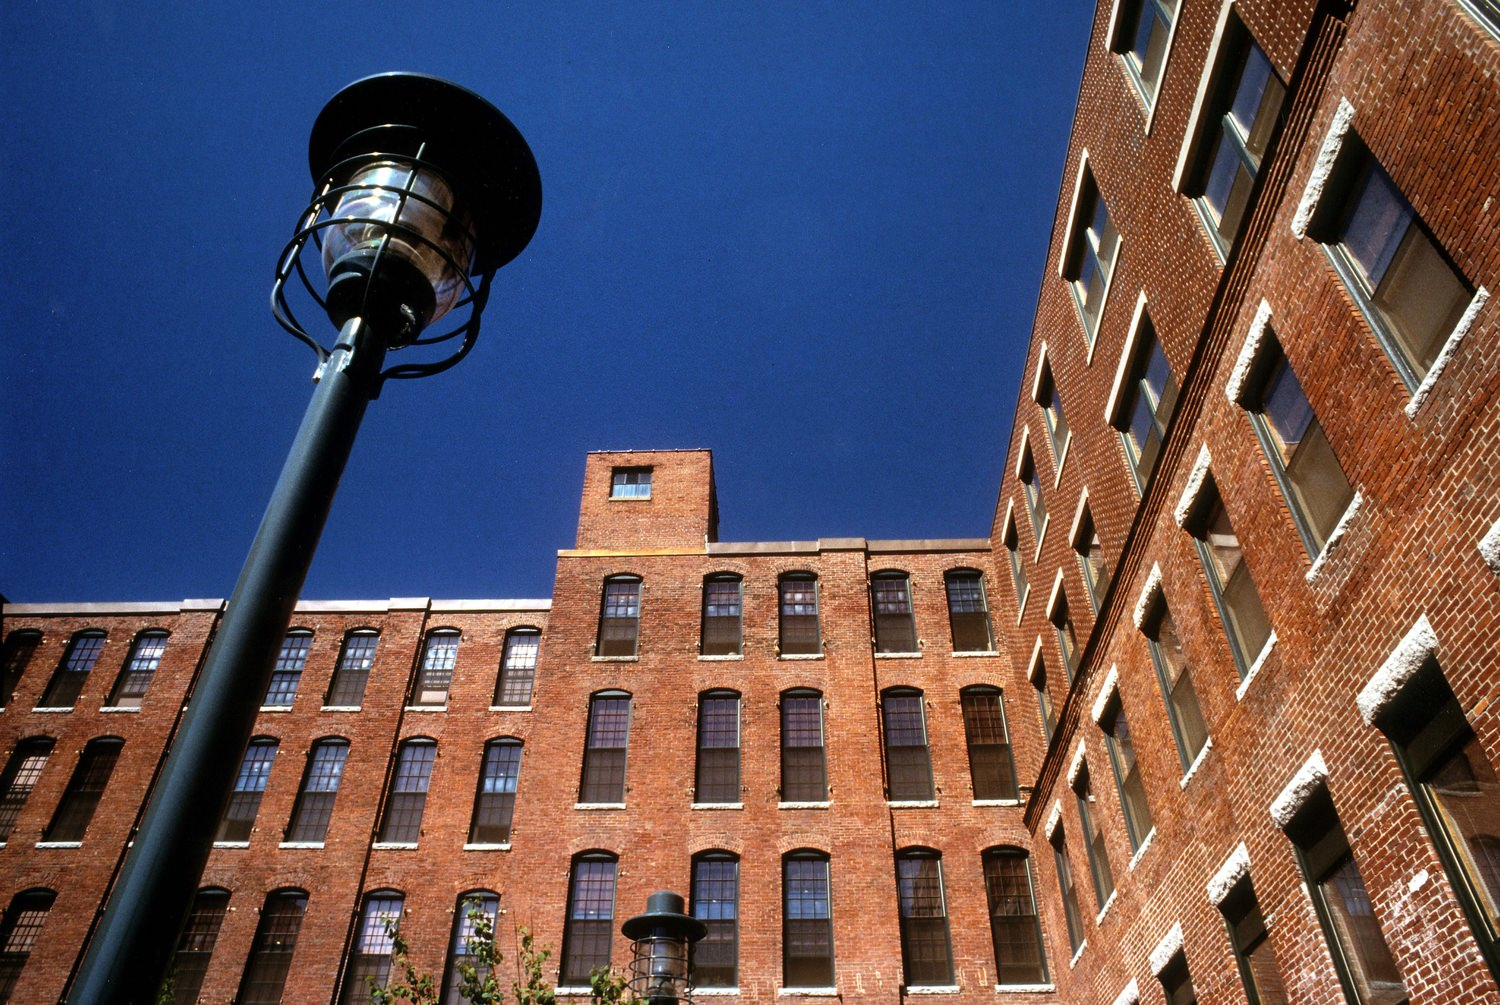 A large brick building that has some black metal lamp posts out front of it and a lot of windows on the building.